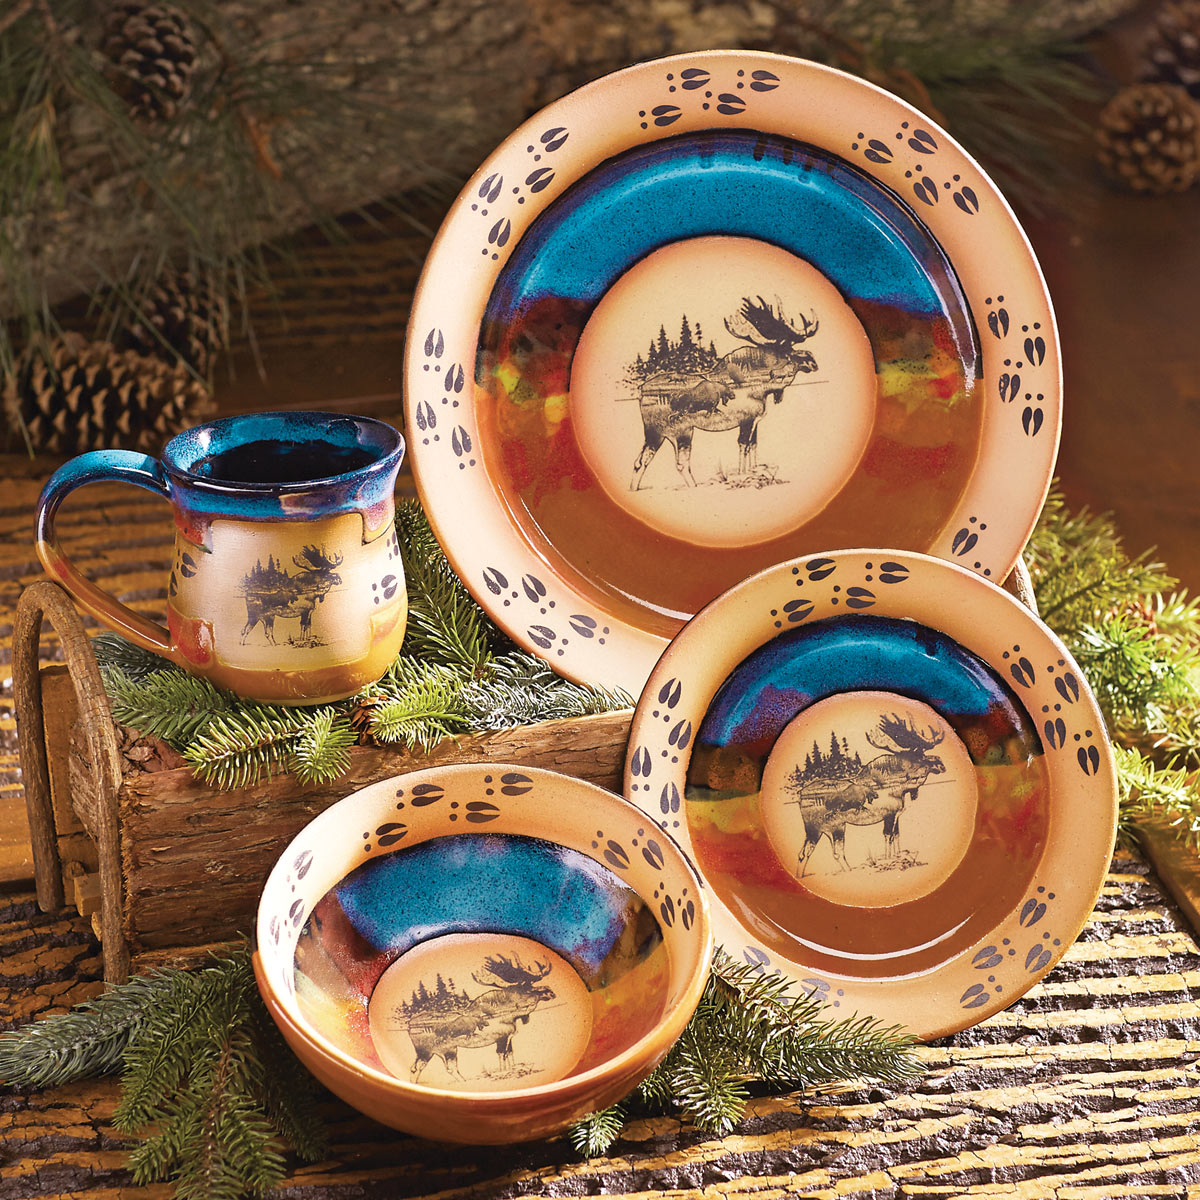 Black Forest Decor Scenic moose pottery dinnerware - 4 pcs